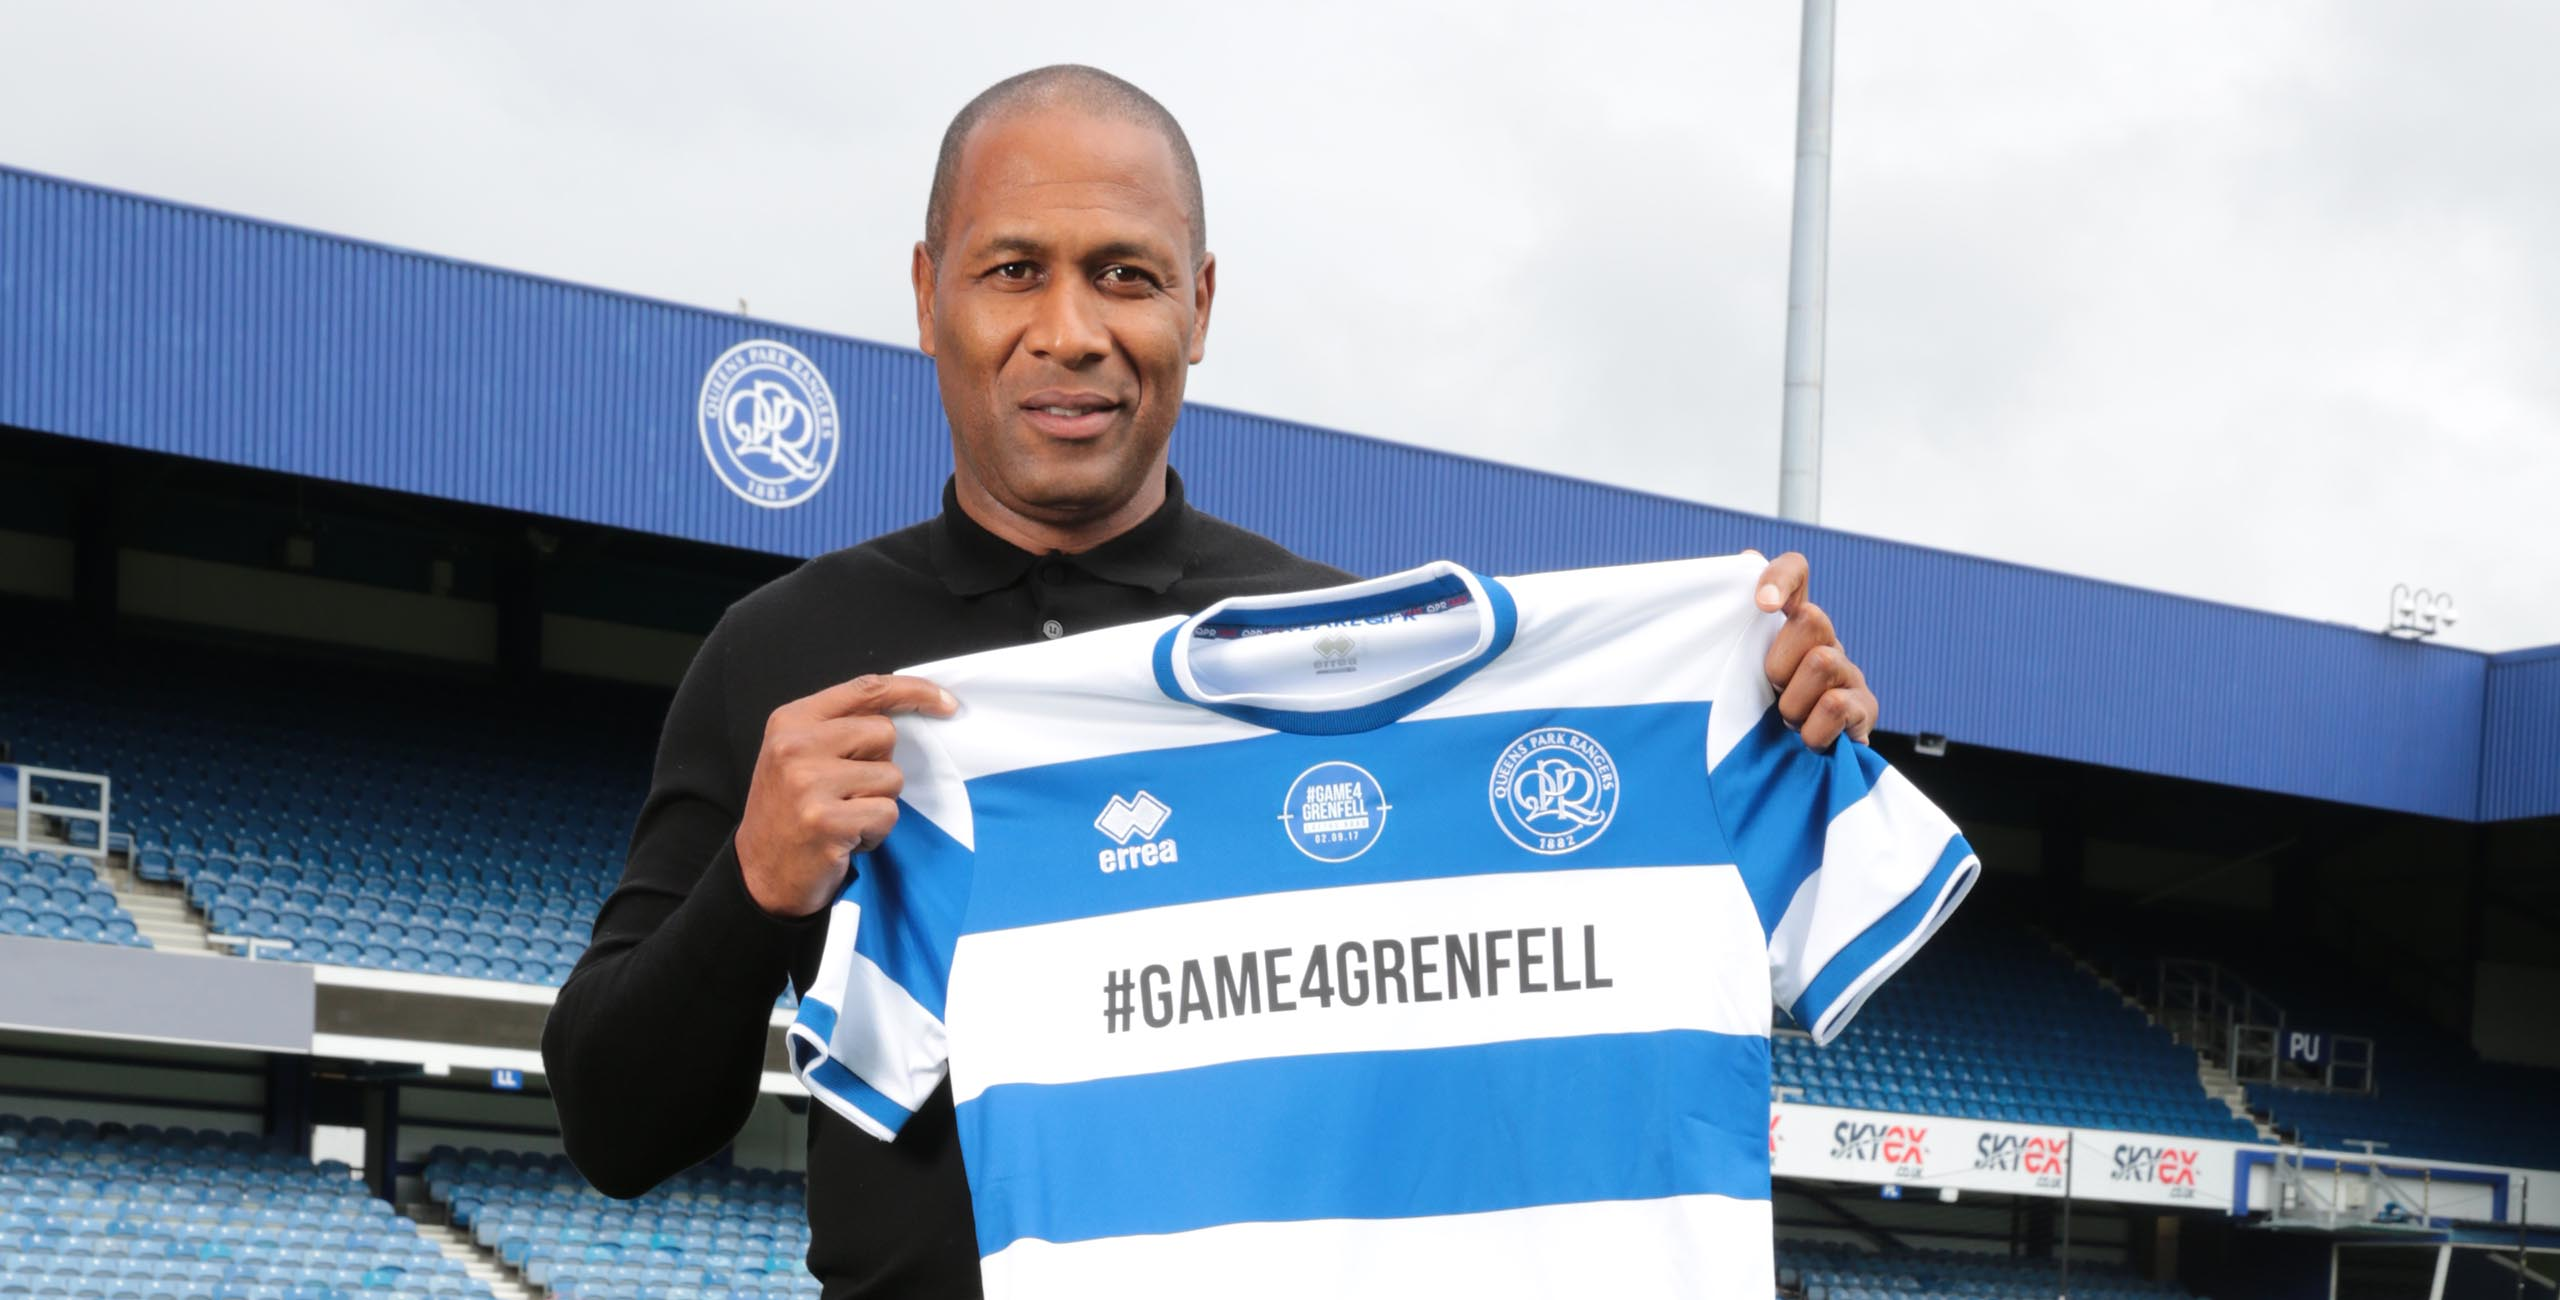 Game4grenfell_press_02